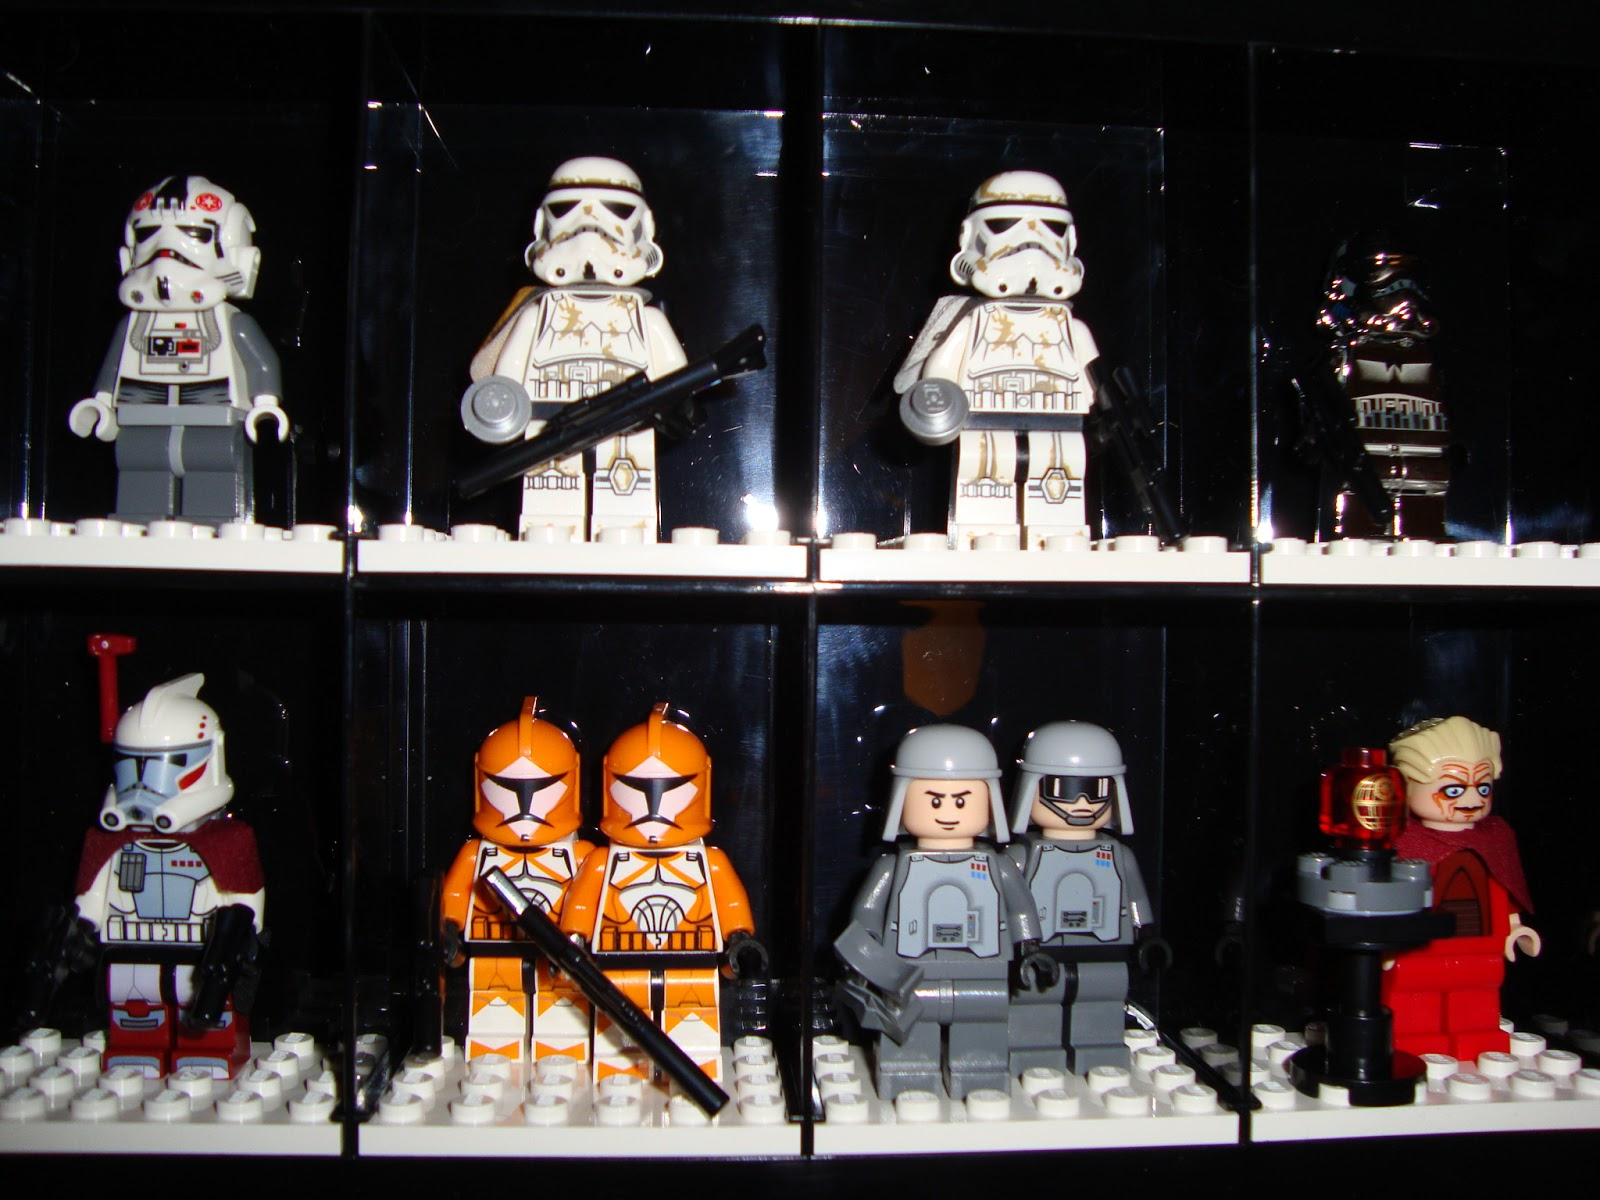 Free Lego - The Best Star Wars Lego Blog Ever: My Lego Collection